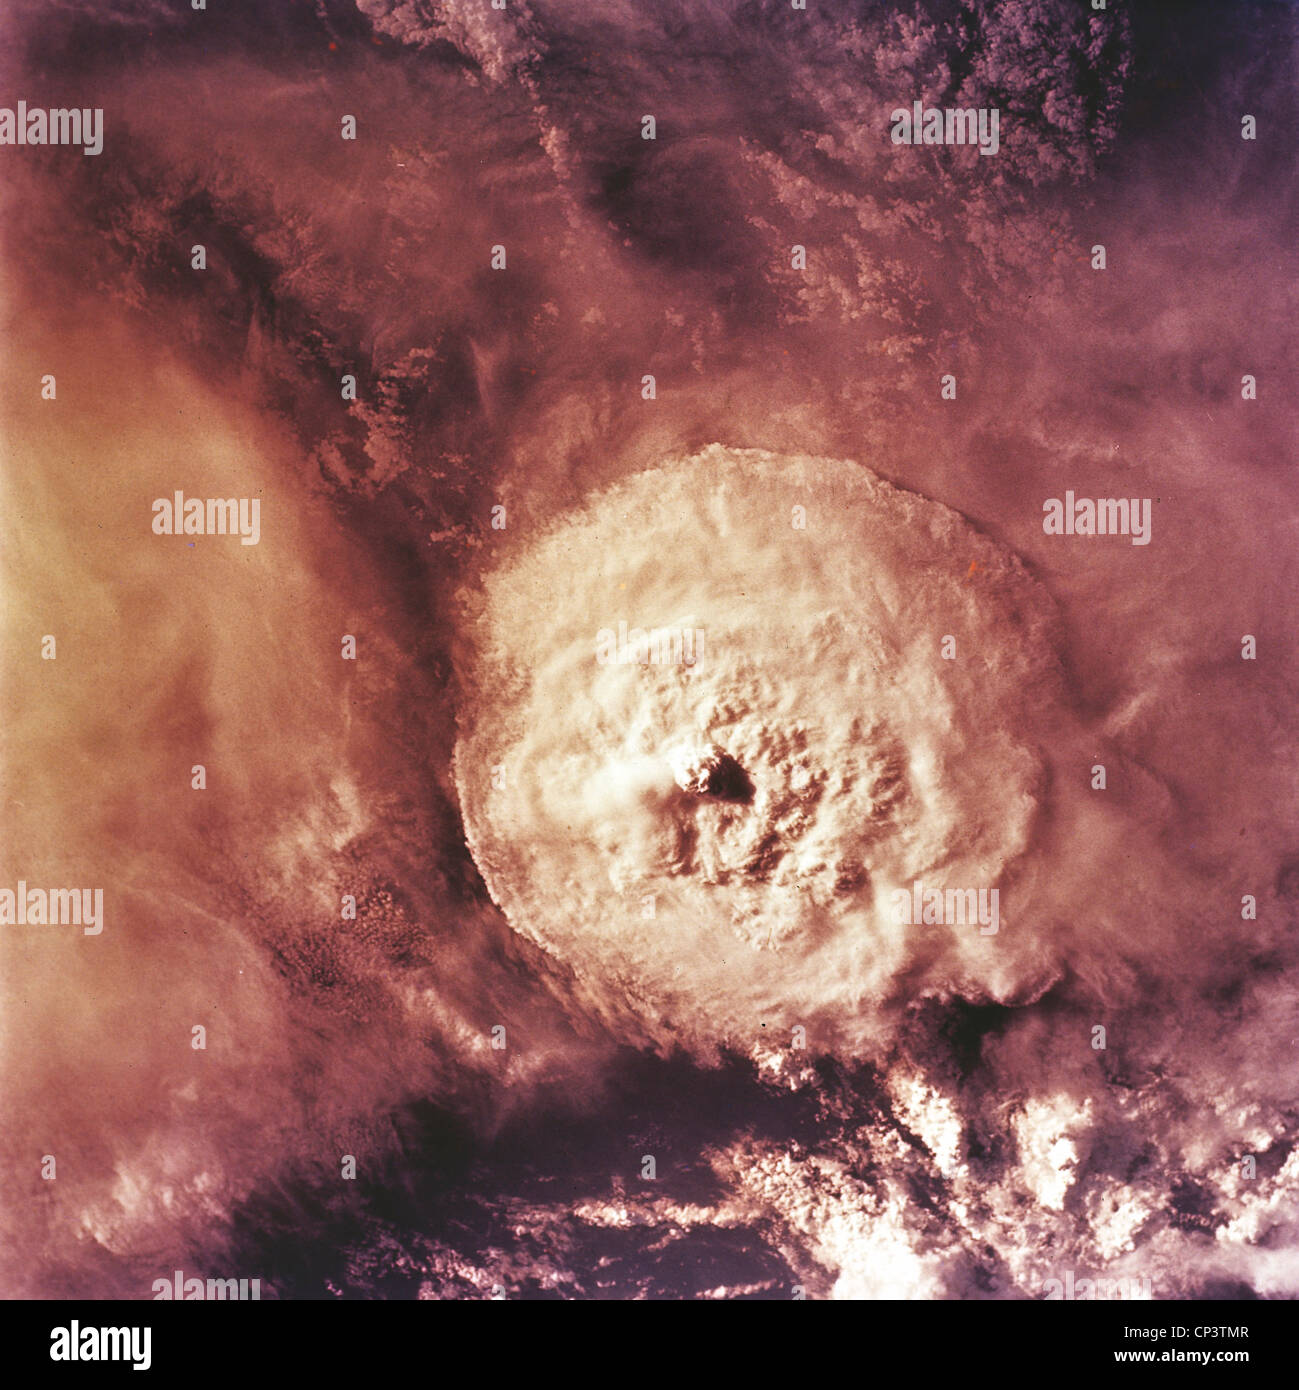 Meteorology - The eye of a hurricane on the Amazon (Brazil). View from satellite. - Stock Image